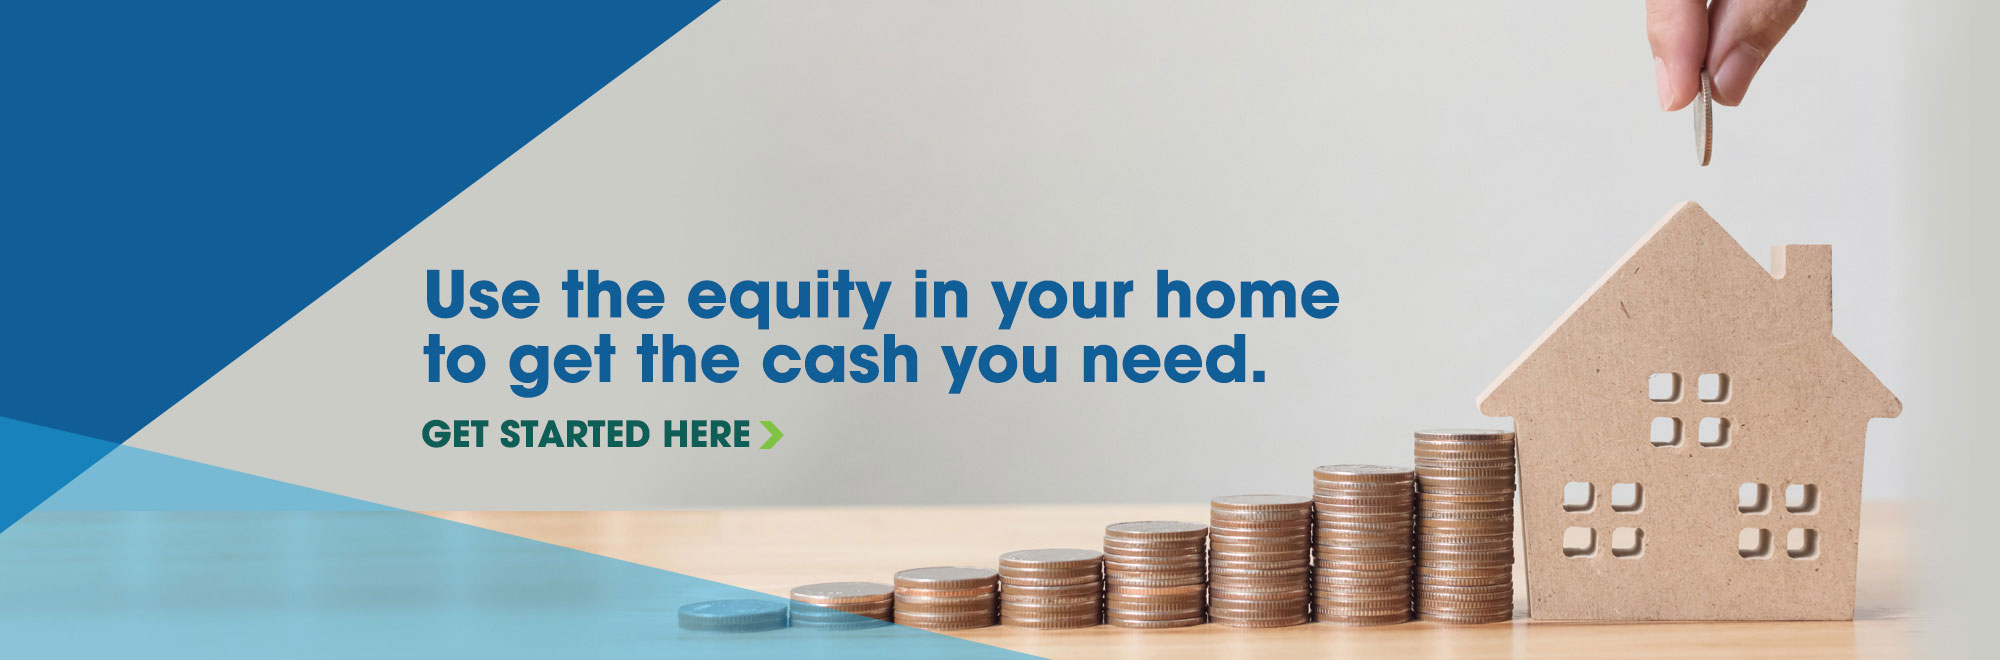 Use the equity in your home to get the cash you need.